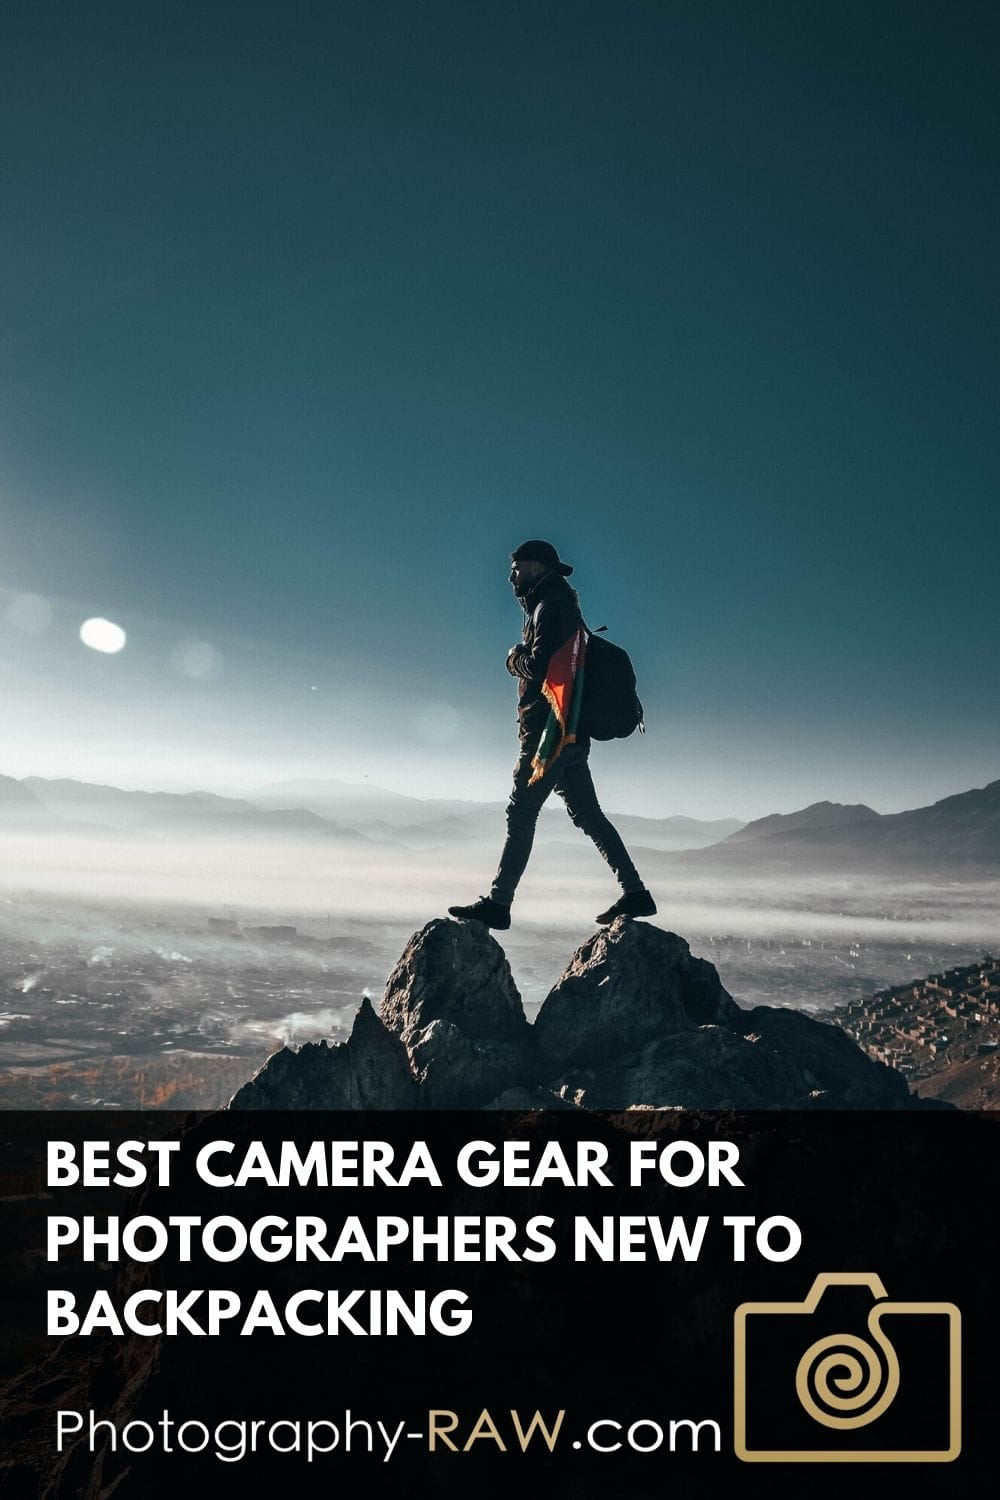 We'll take a look at your backpacking needs by discovering what types of backpacking photography adventure you're most interested in pursuing.